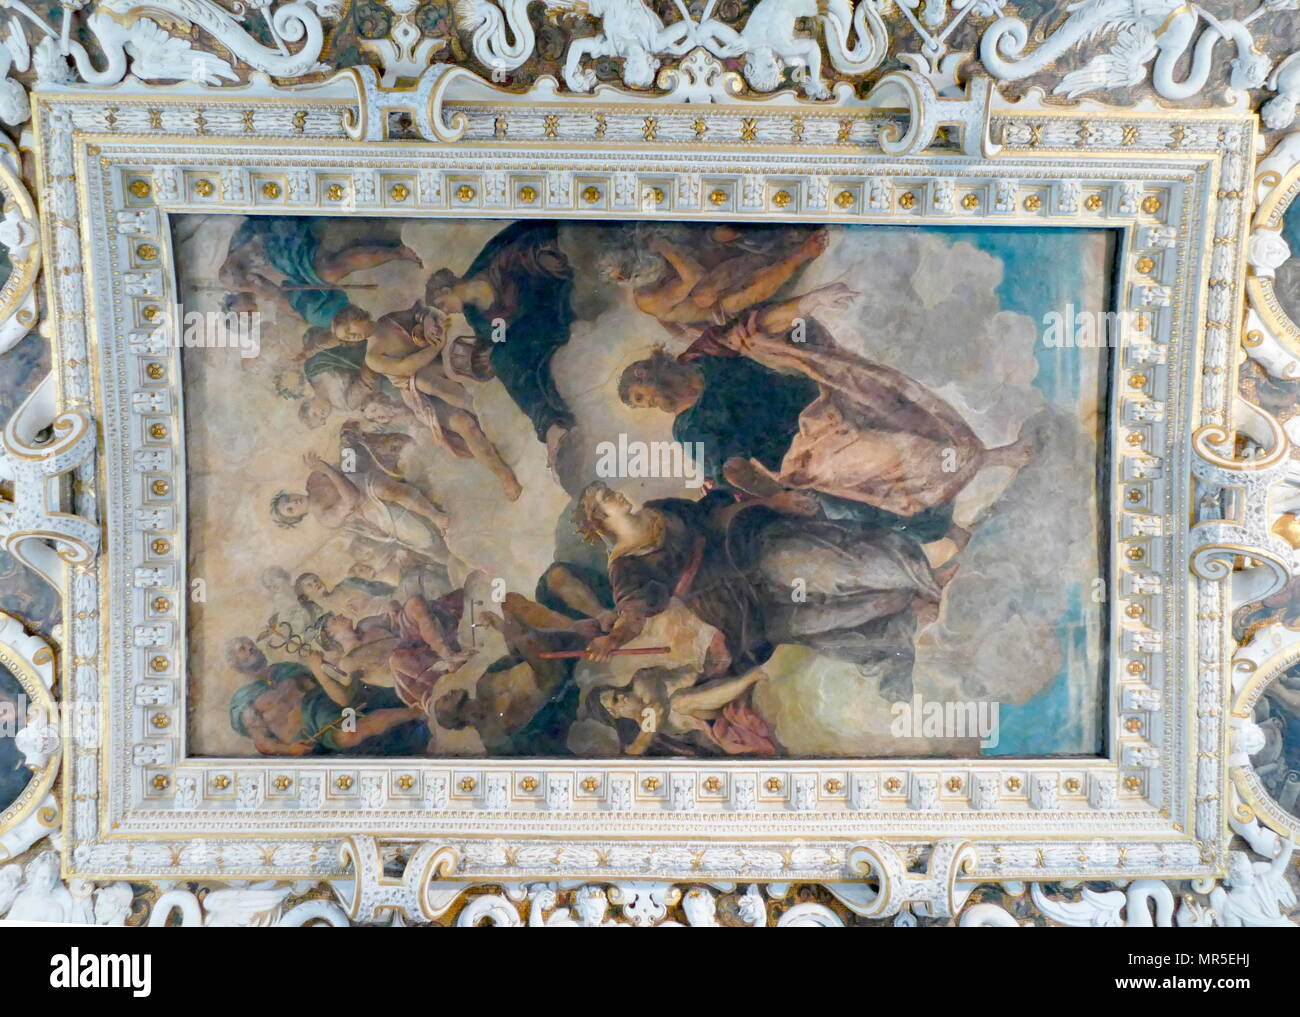 ornate plasterwork and painting adorn ceilings within the state rooms of the Doge's Palace in Venice Italy - Stock Image